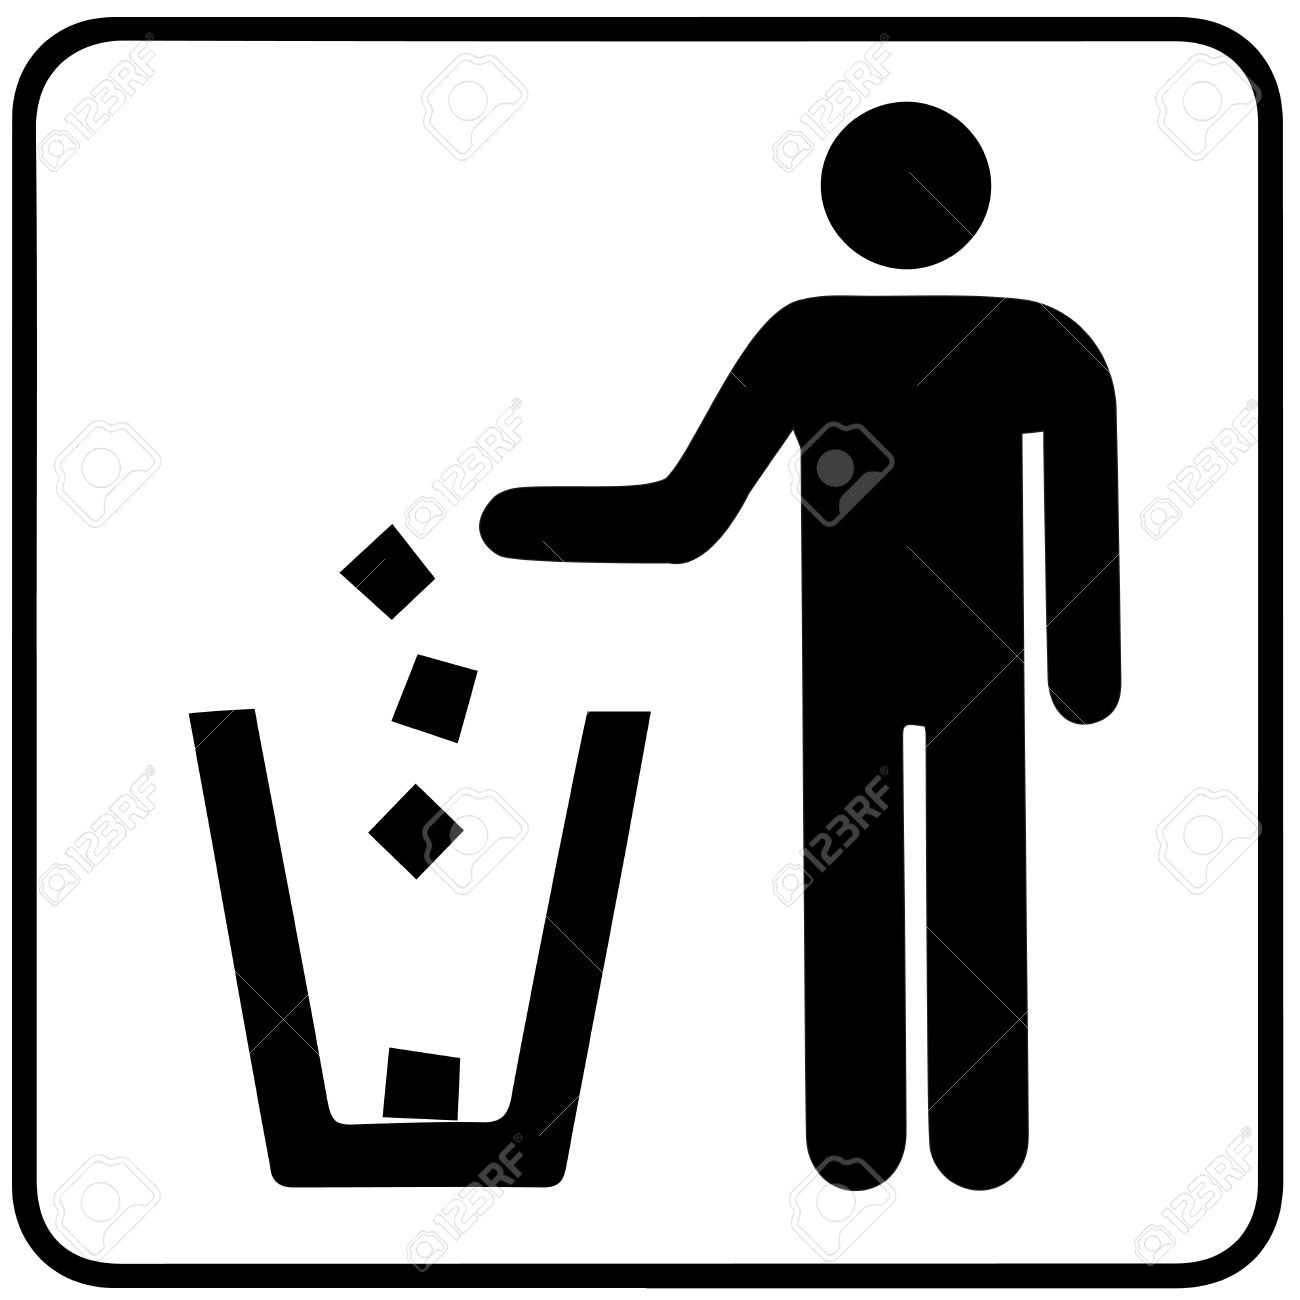 1300x1300 Garbage Recycling Symbol Royalty Free Cliparts, Vectors, And Stock